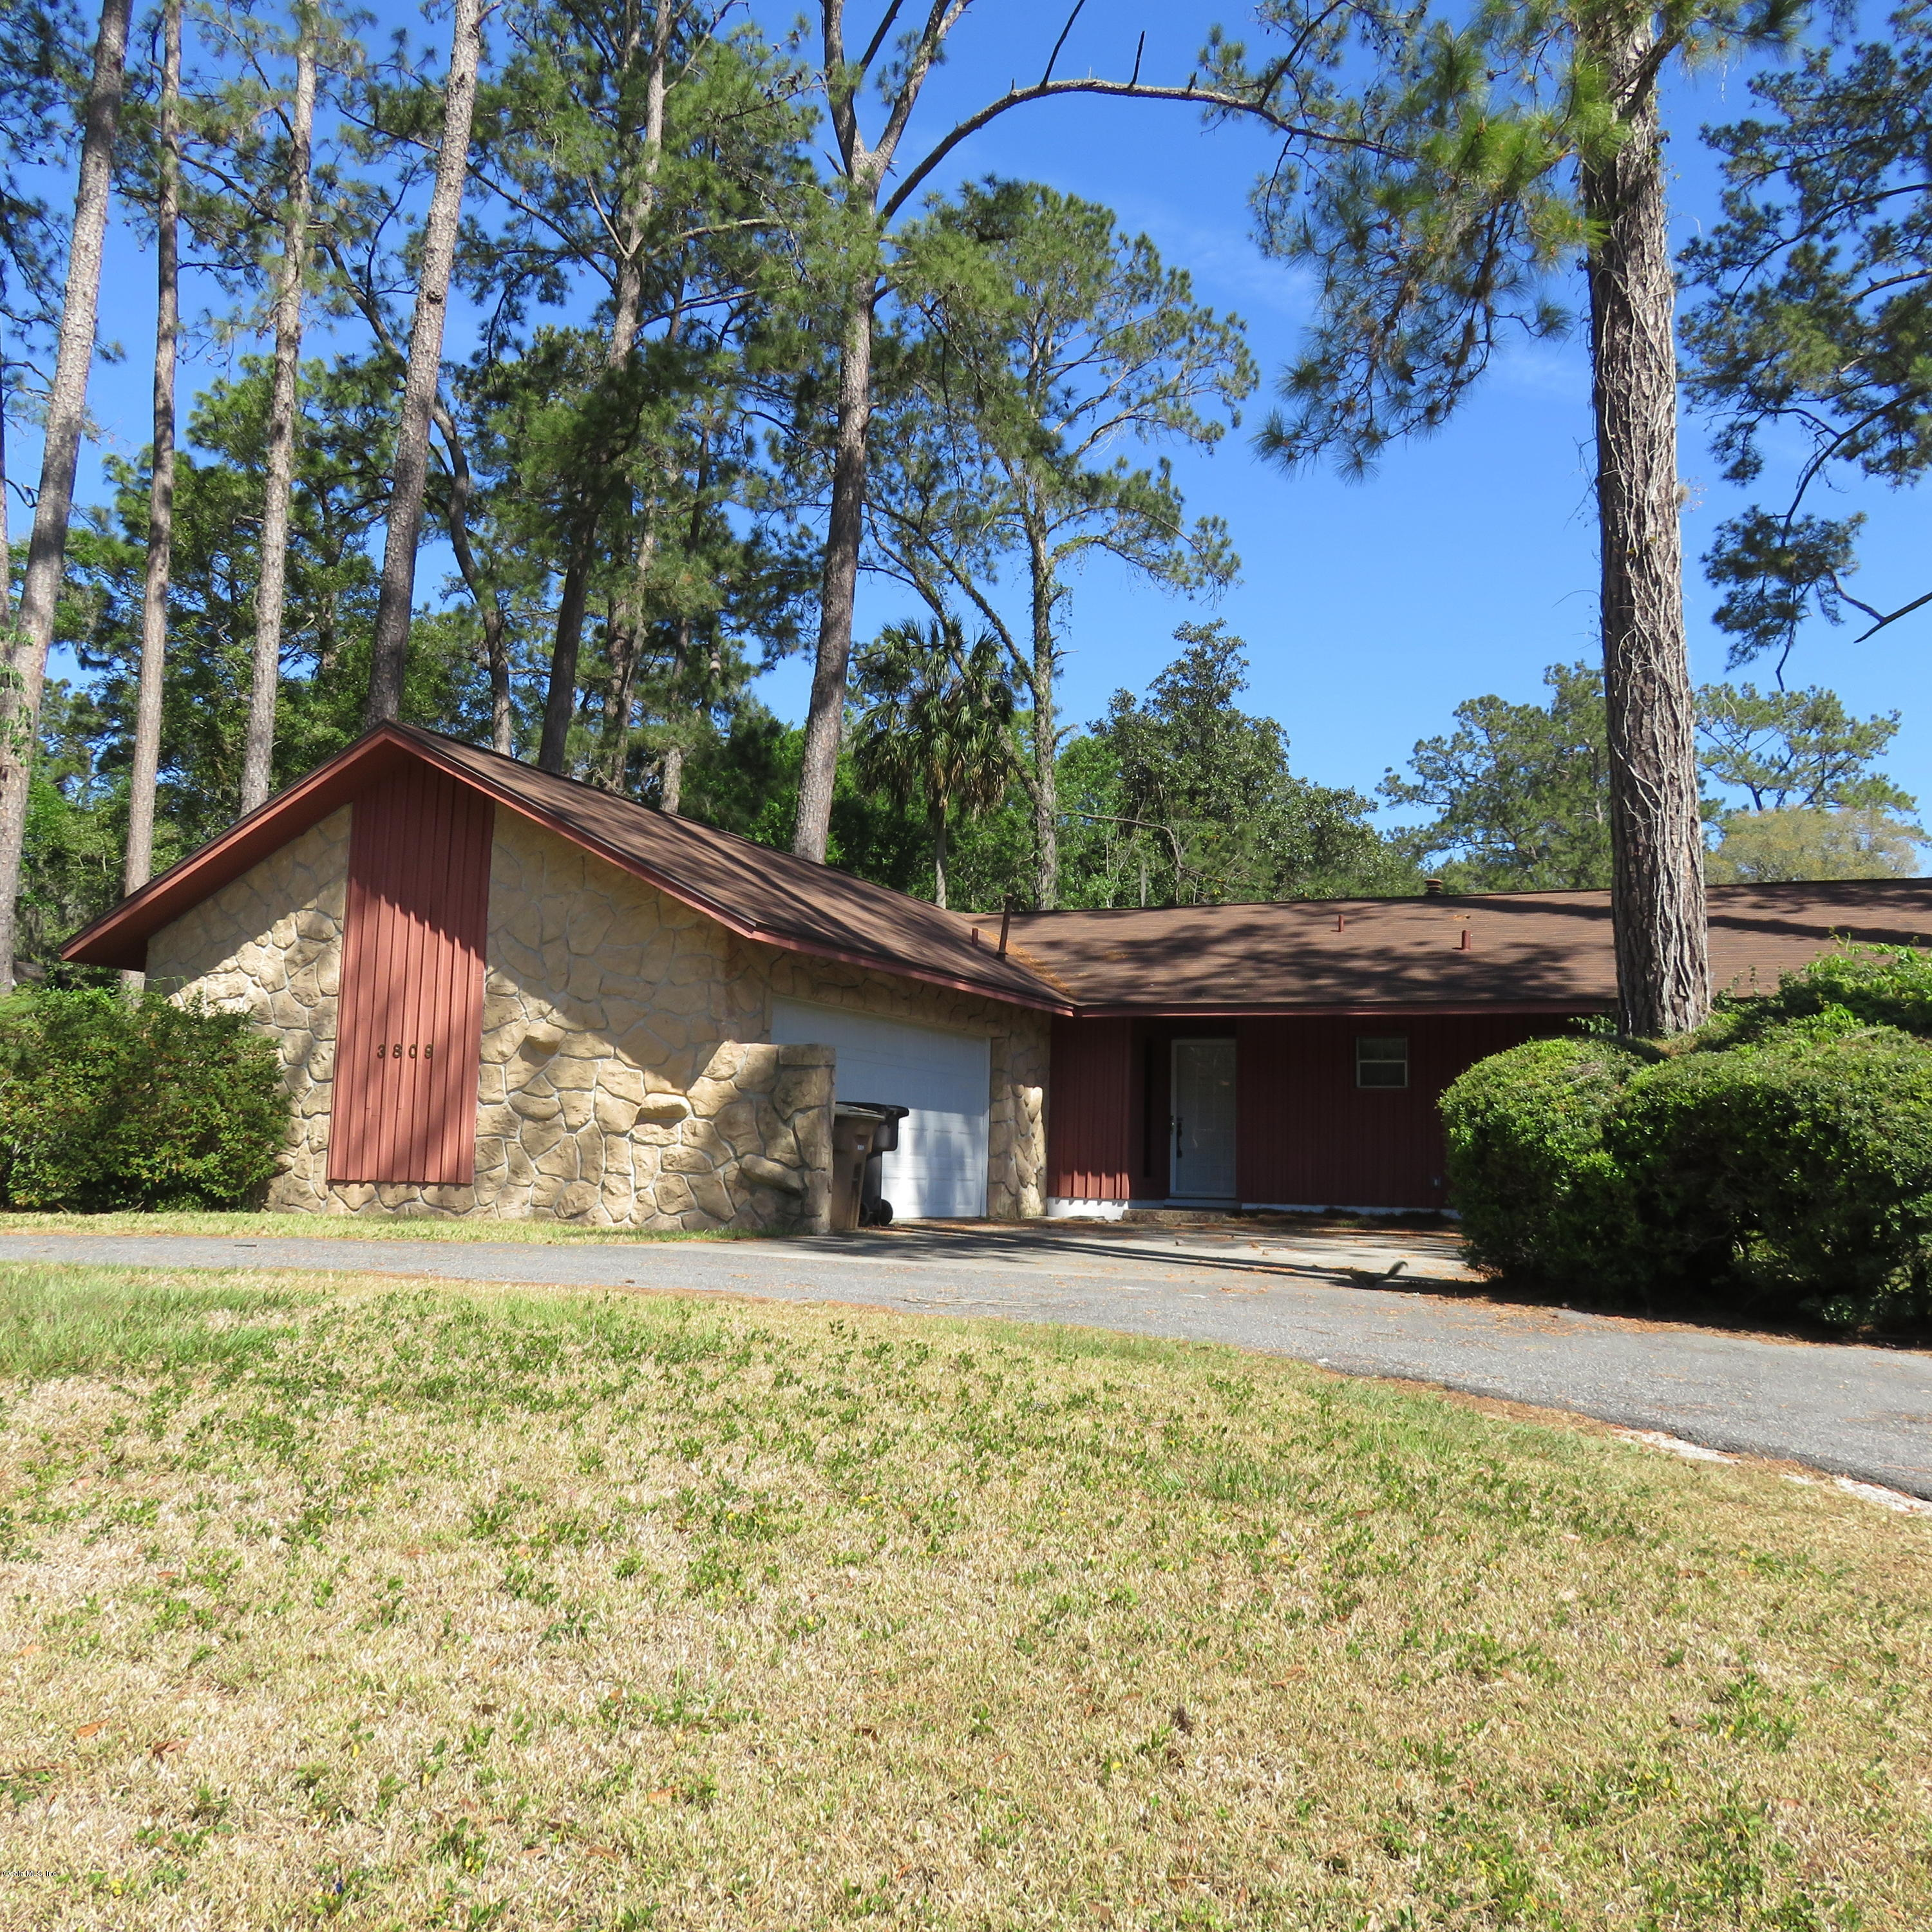 3809 SE 17TH STREET, OCALA, FL 34471